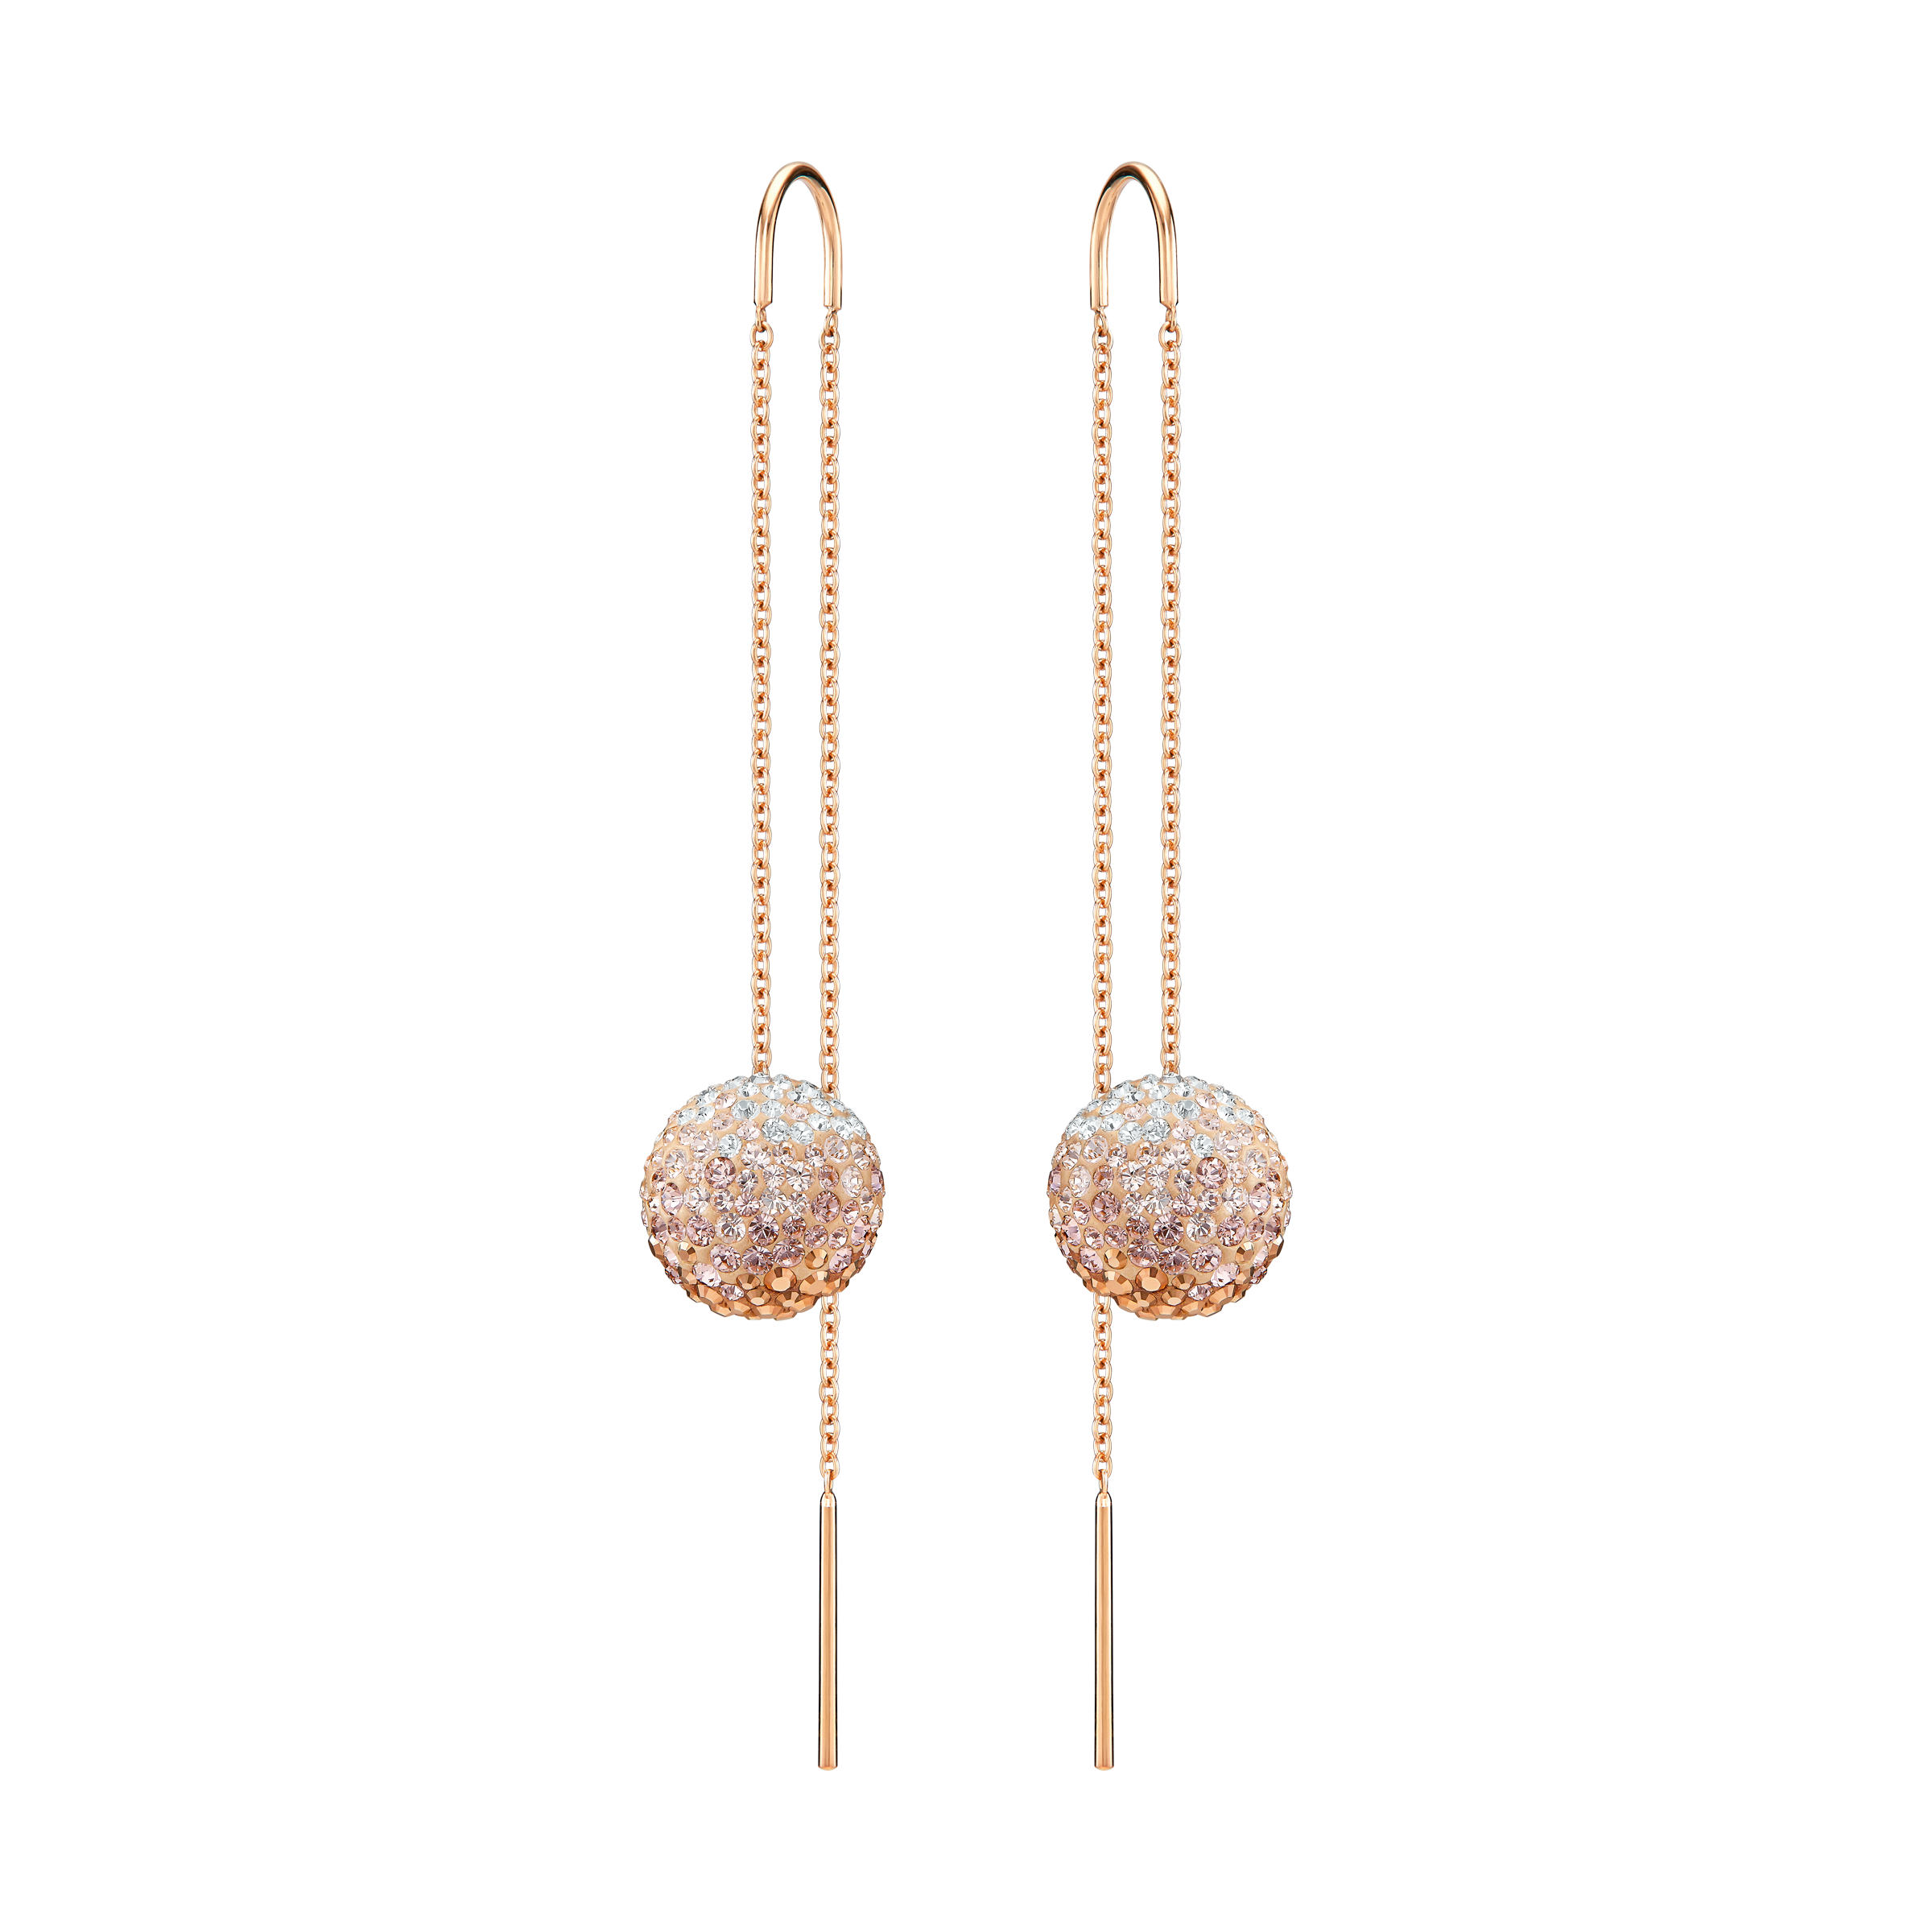 Fun Chain Pierced Earrings, Pink, Rose-gold tone plated